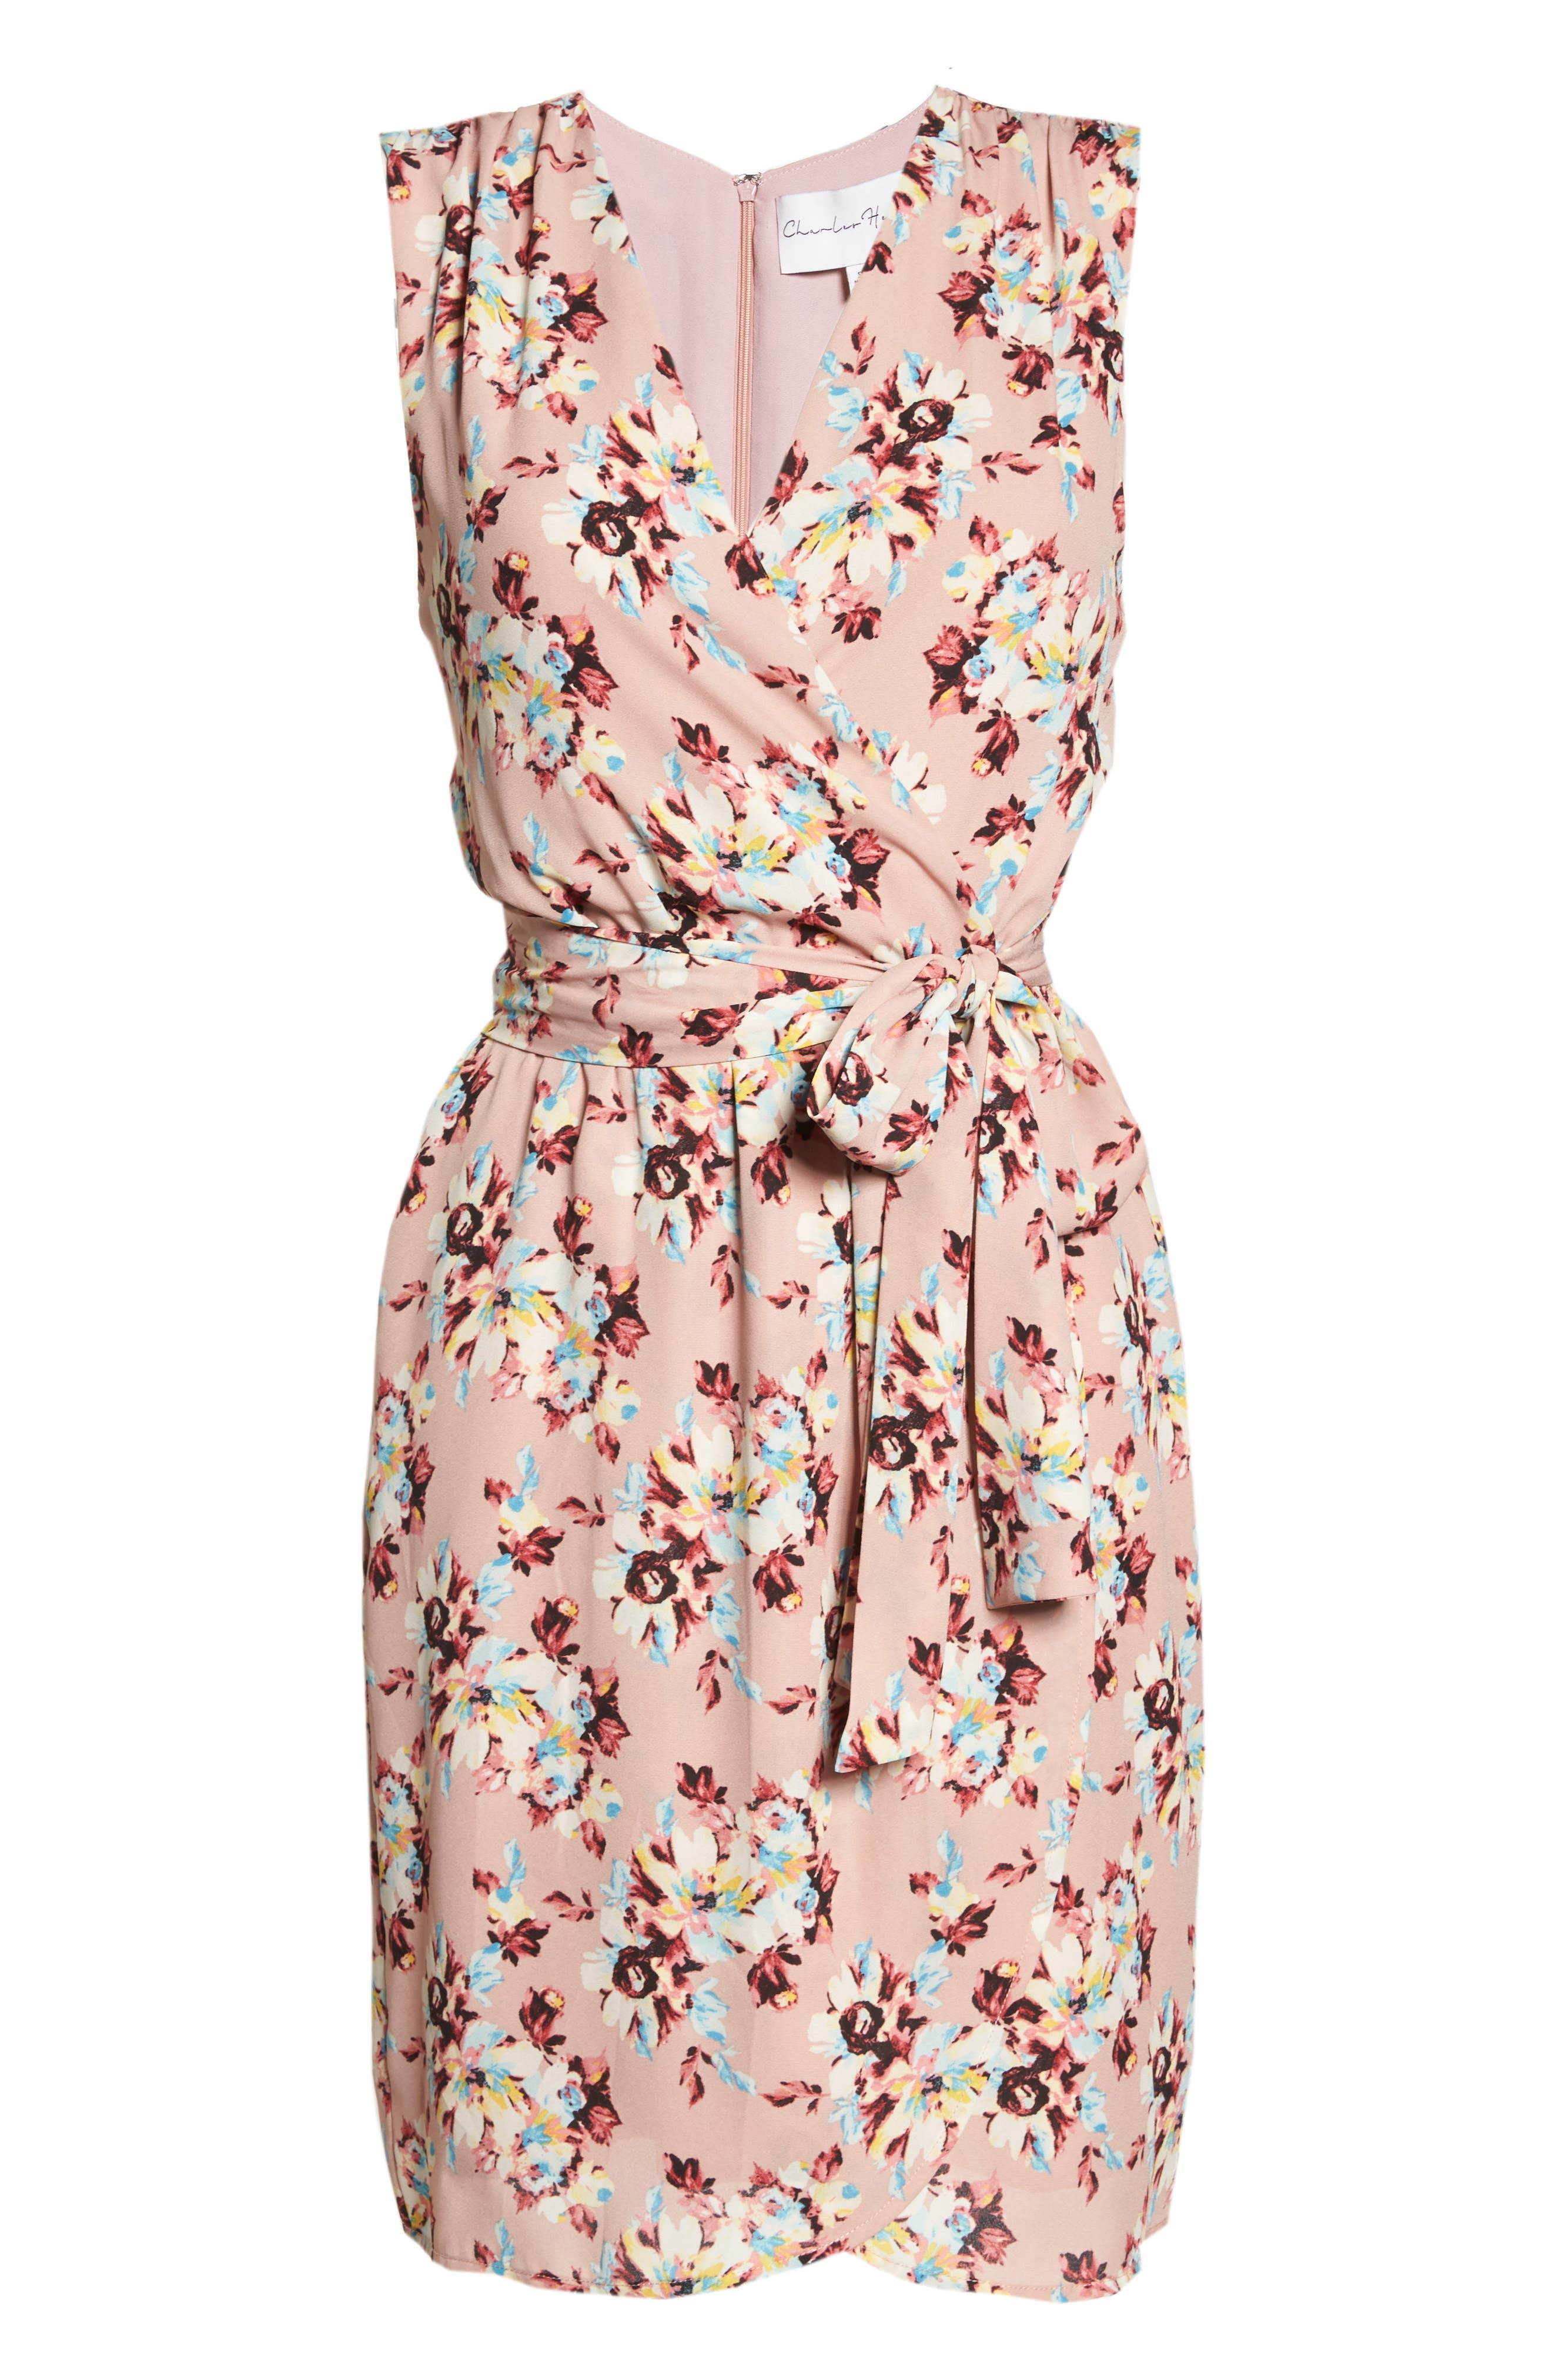 Floral Faux Wrap Dress,                             Alternate thumbnail 7, color,                             657